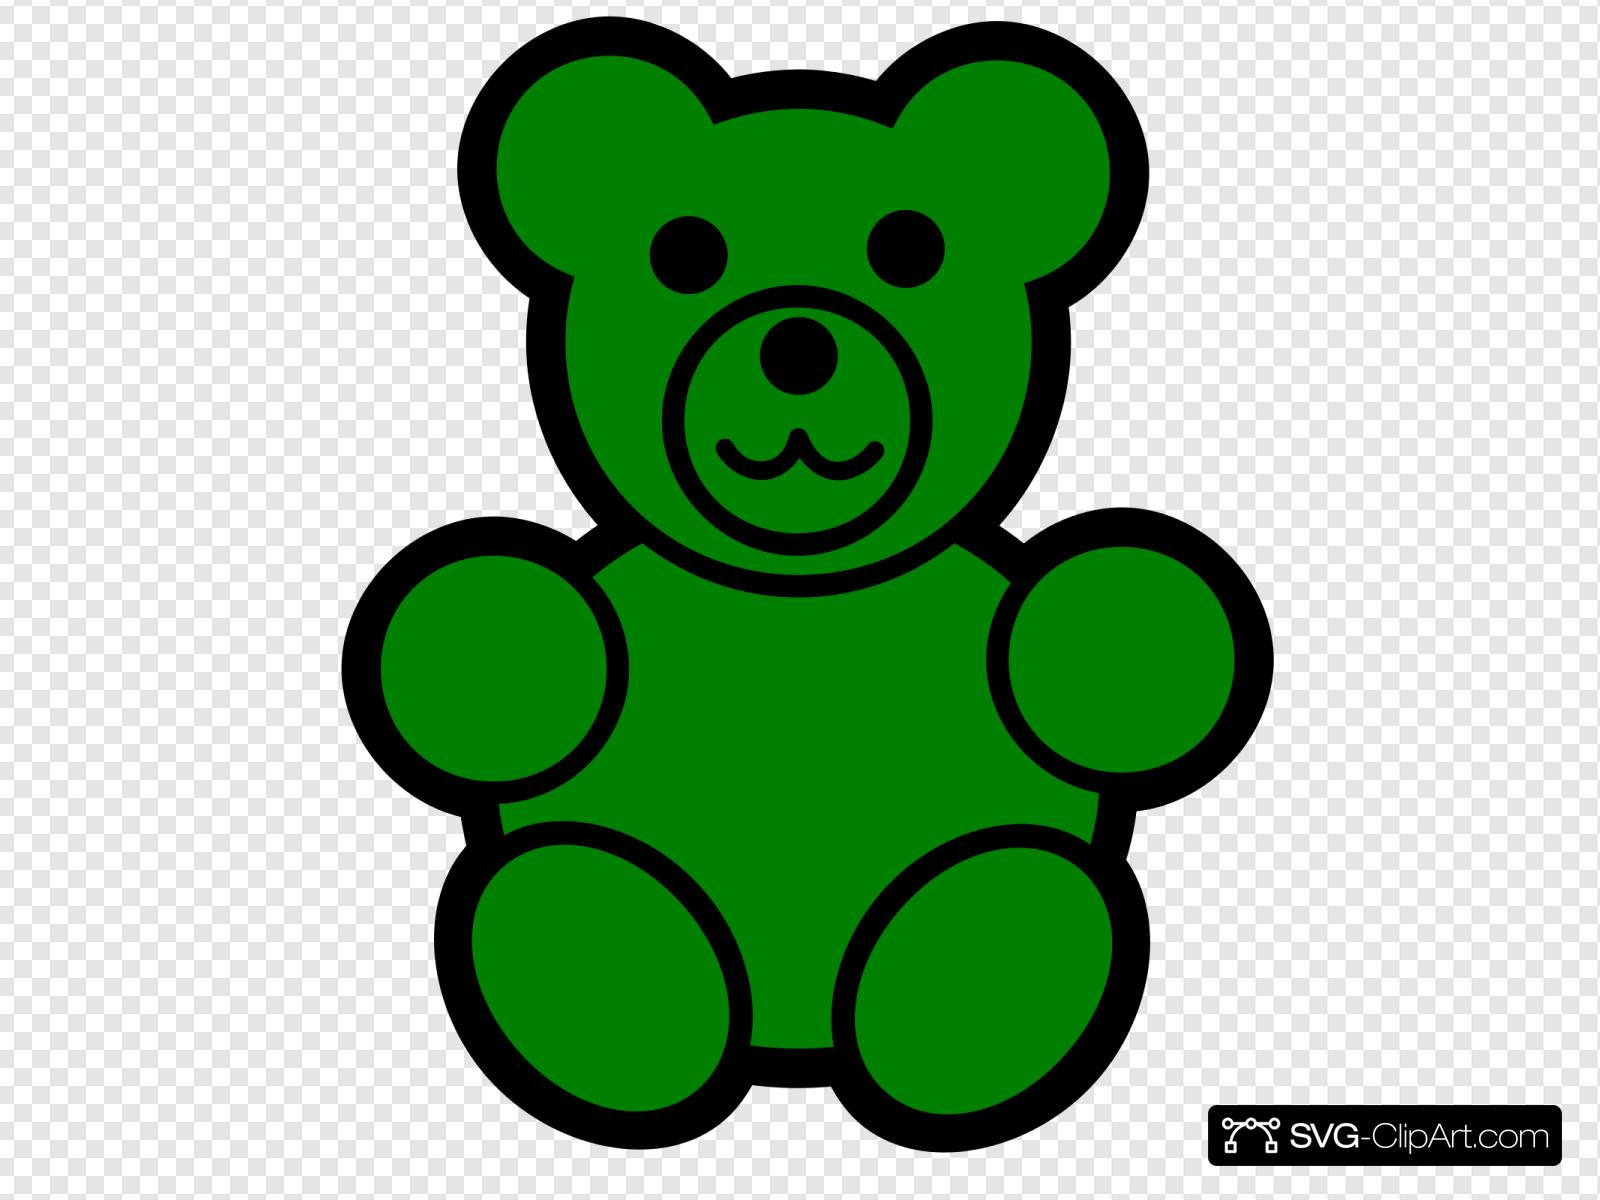 Green Bear Clip art, Icon and SVG.